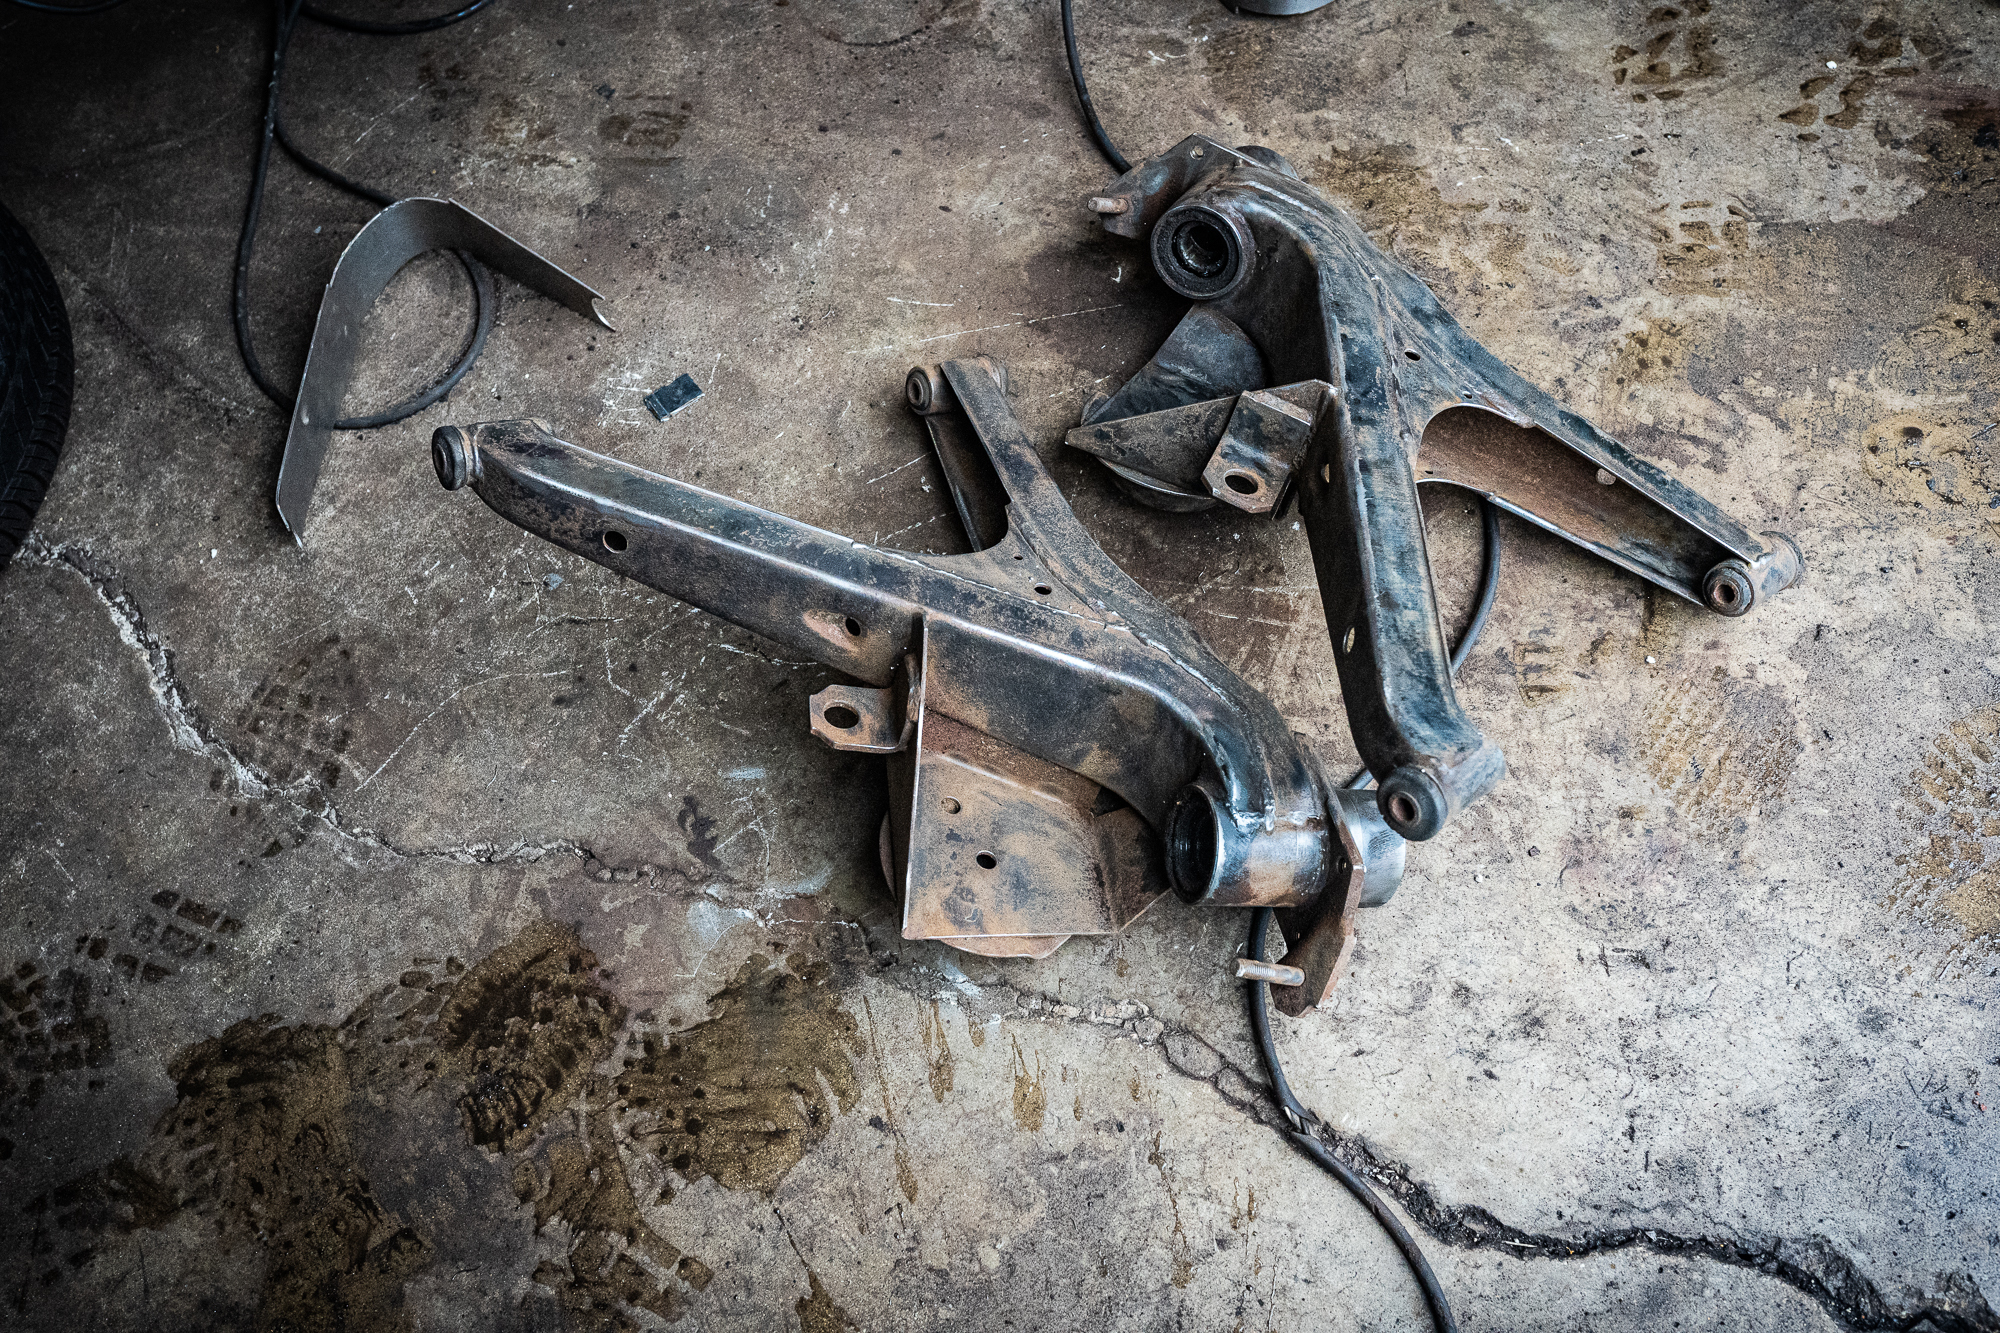 bmw 2002 resto trailing arms removed